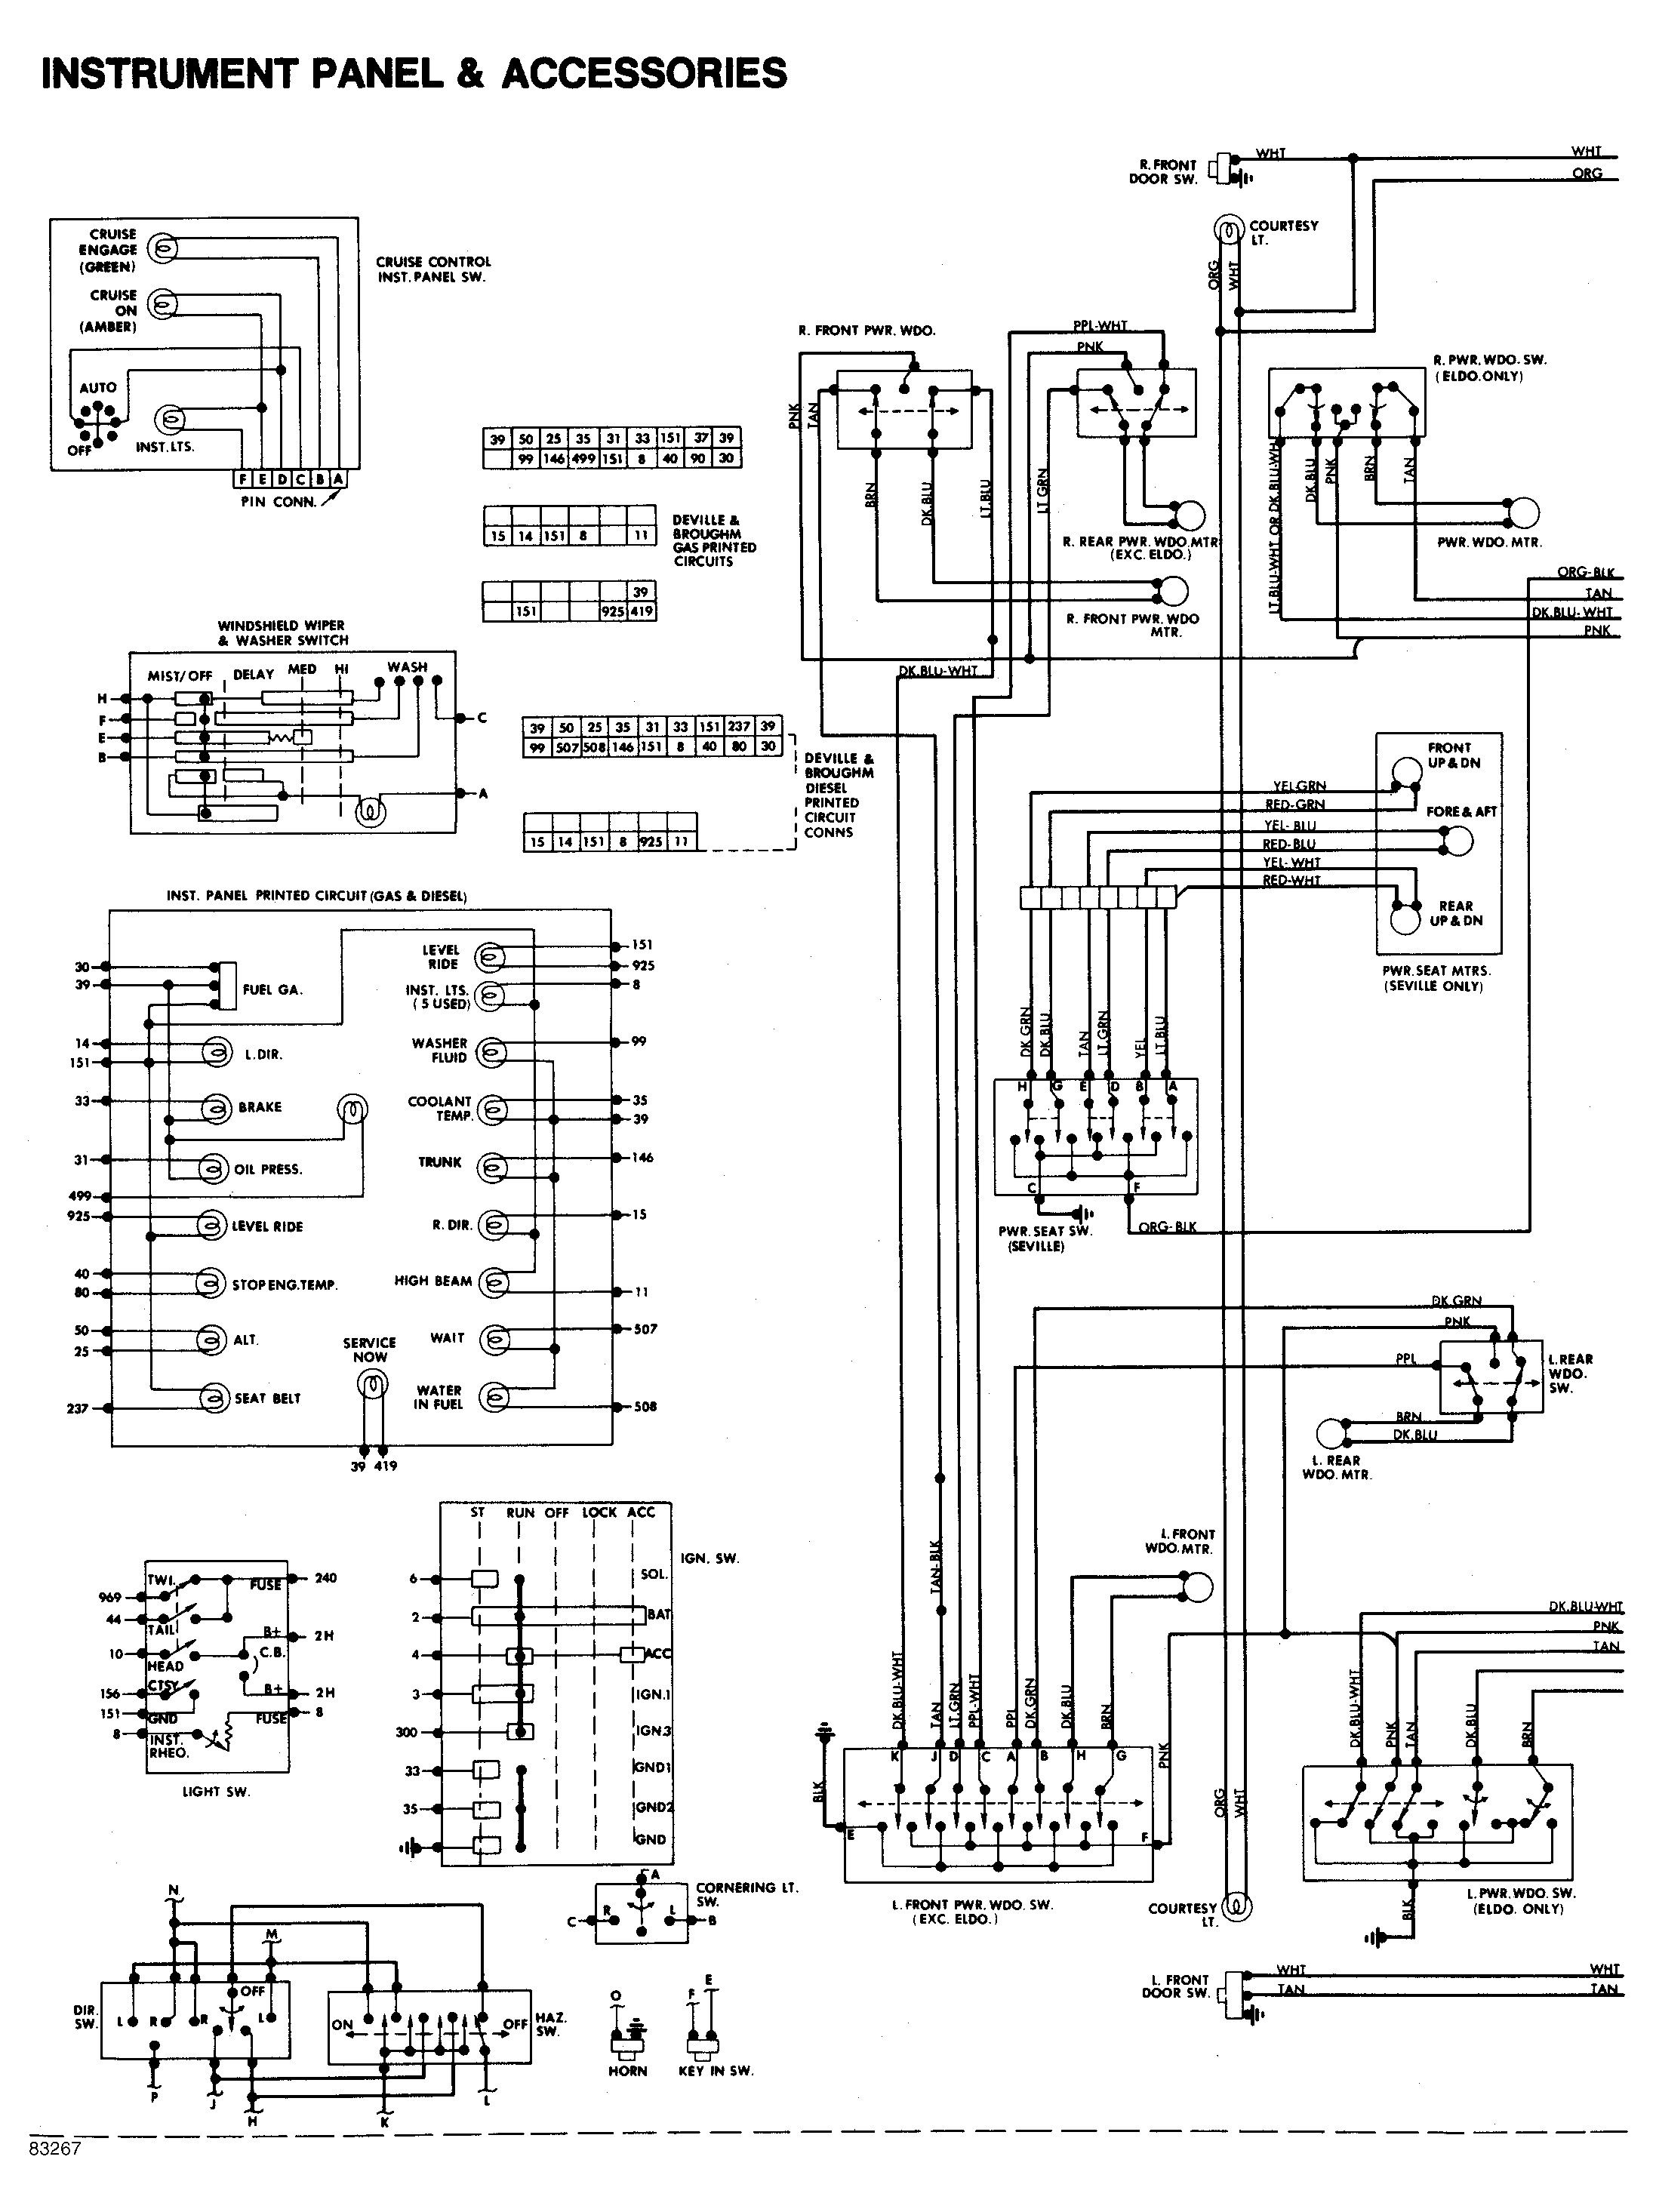 Honda Accord Radio Wiring Diagram Fresh Daewoo Leganza Audio Wiring Diagram Wiring Diagrams